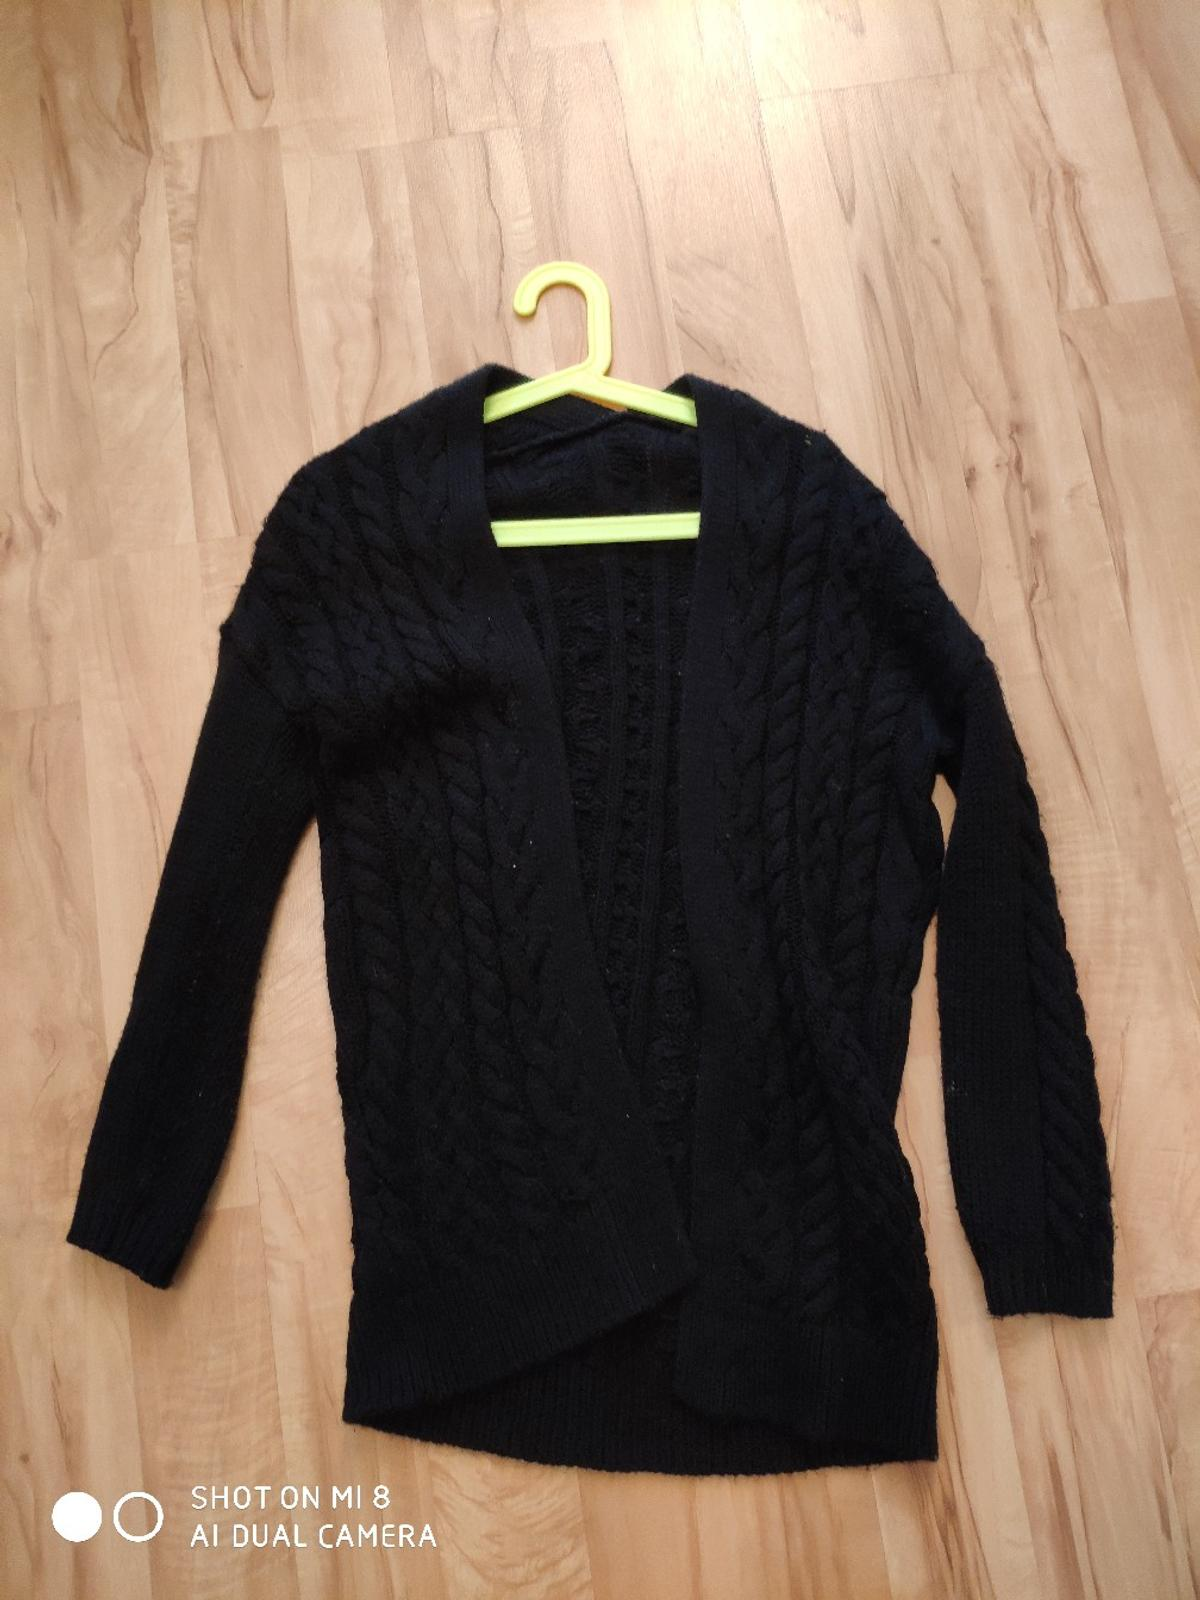 newest 0a8d1 fbacd Schwarzer Cardigan, lang